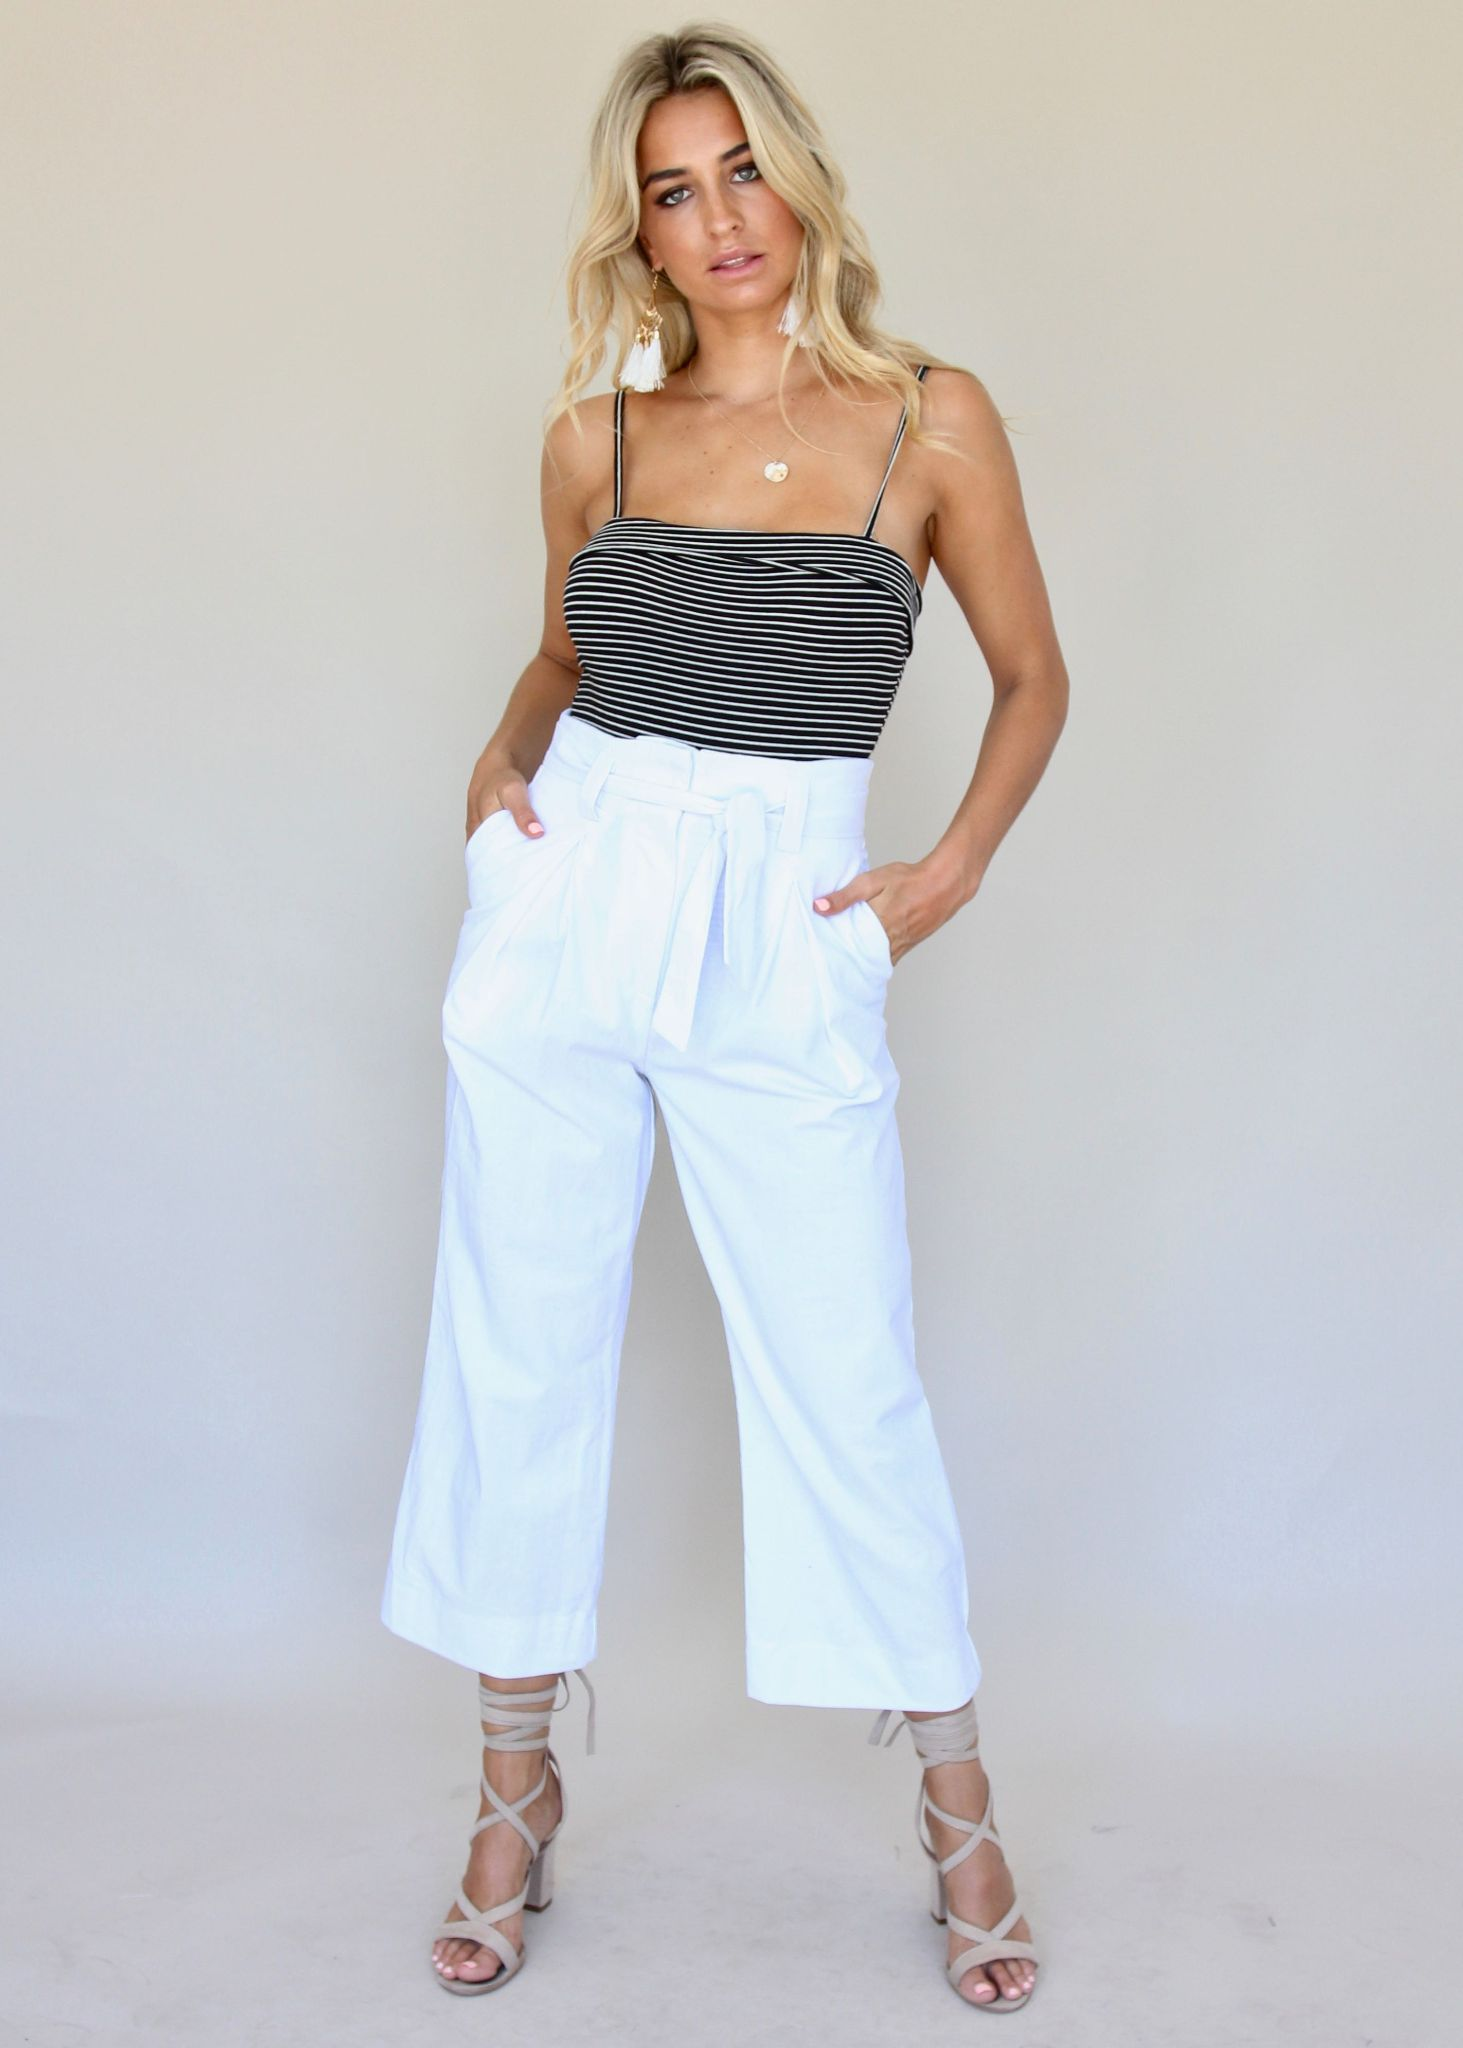 Lady of Manor Pants - White